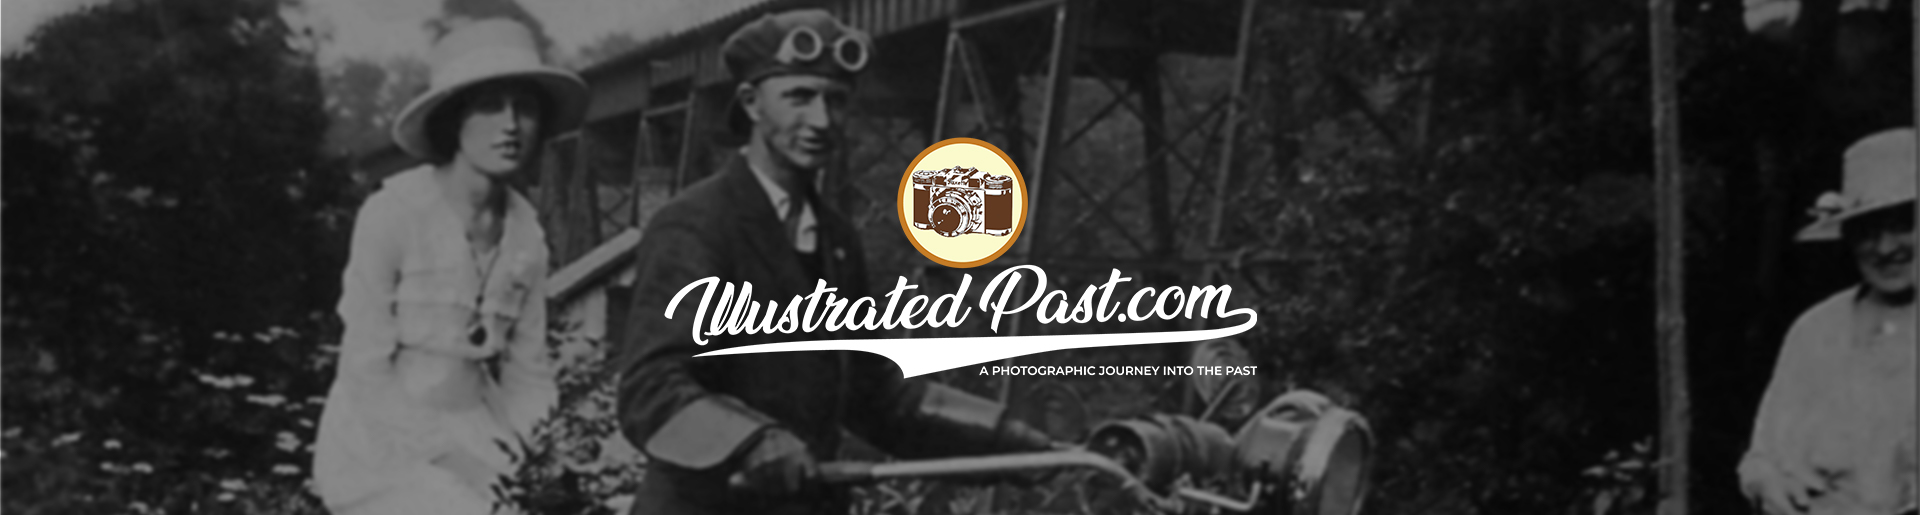 IllustratedPast.com - Here you will find old historical vintage photographs, videos and images from the past.